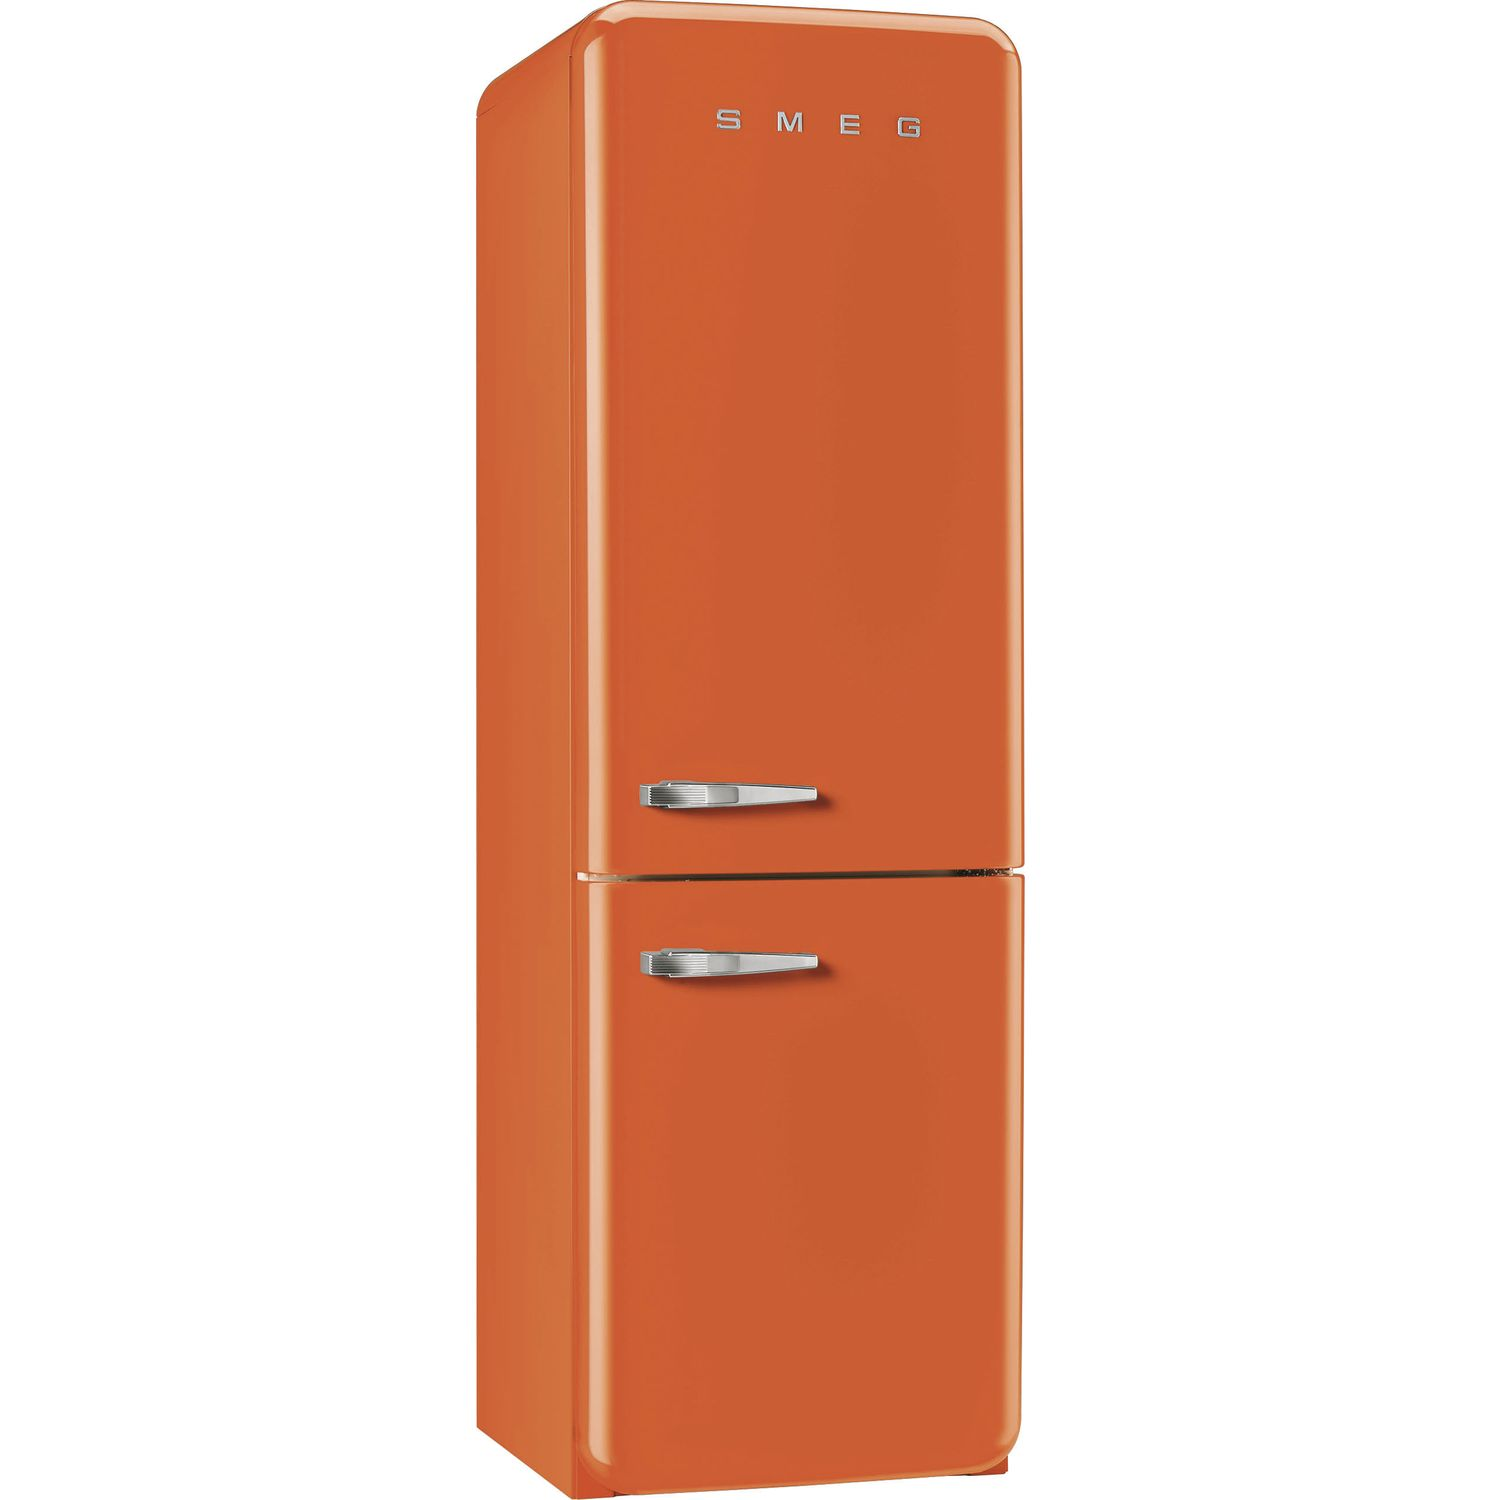 smeg stand k hl gefrierkombination fab32ron1 nofrost a orange ta rechts. Black Bedroom Furniture Sets. Home Design Ideas